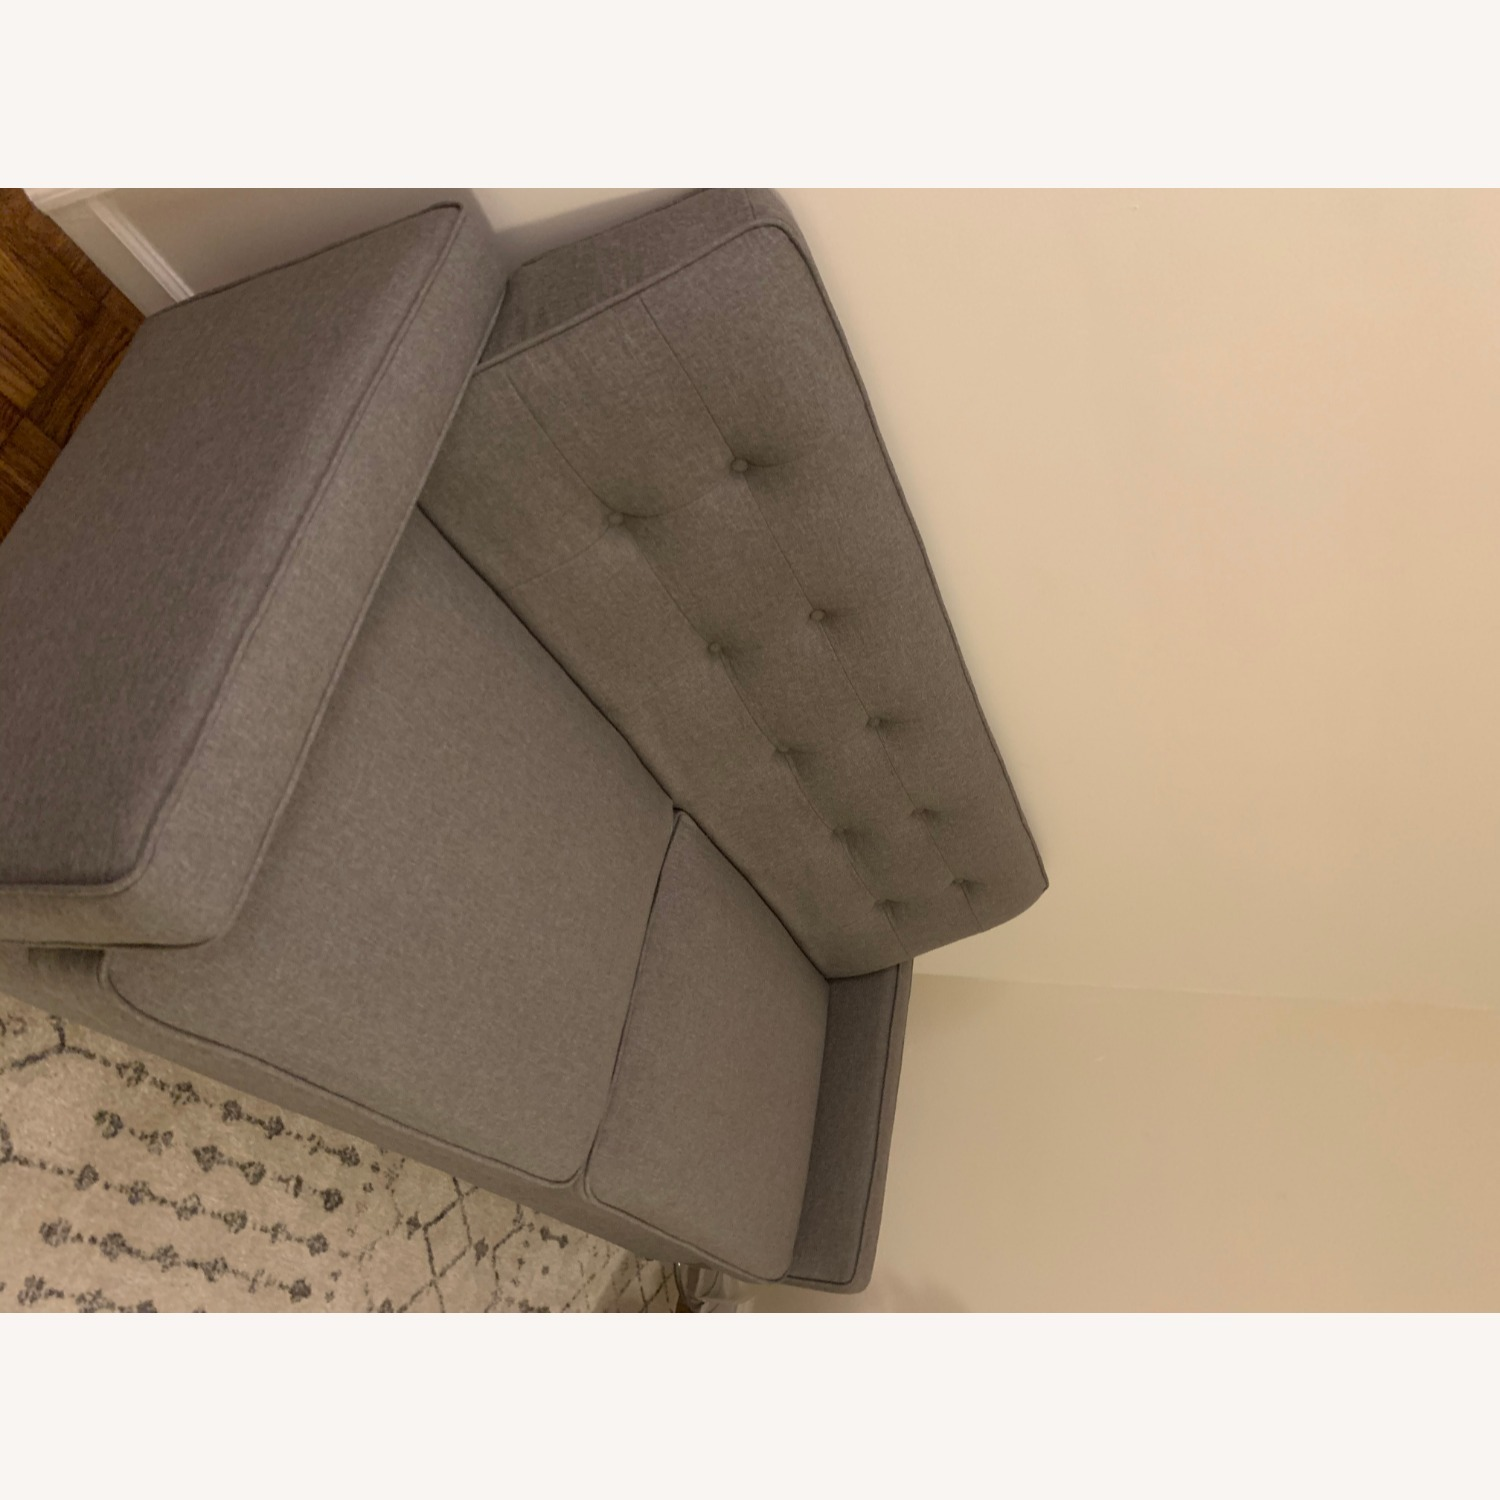 Target Largent Tufted Gray Couch - image-7